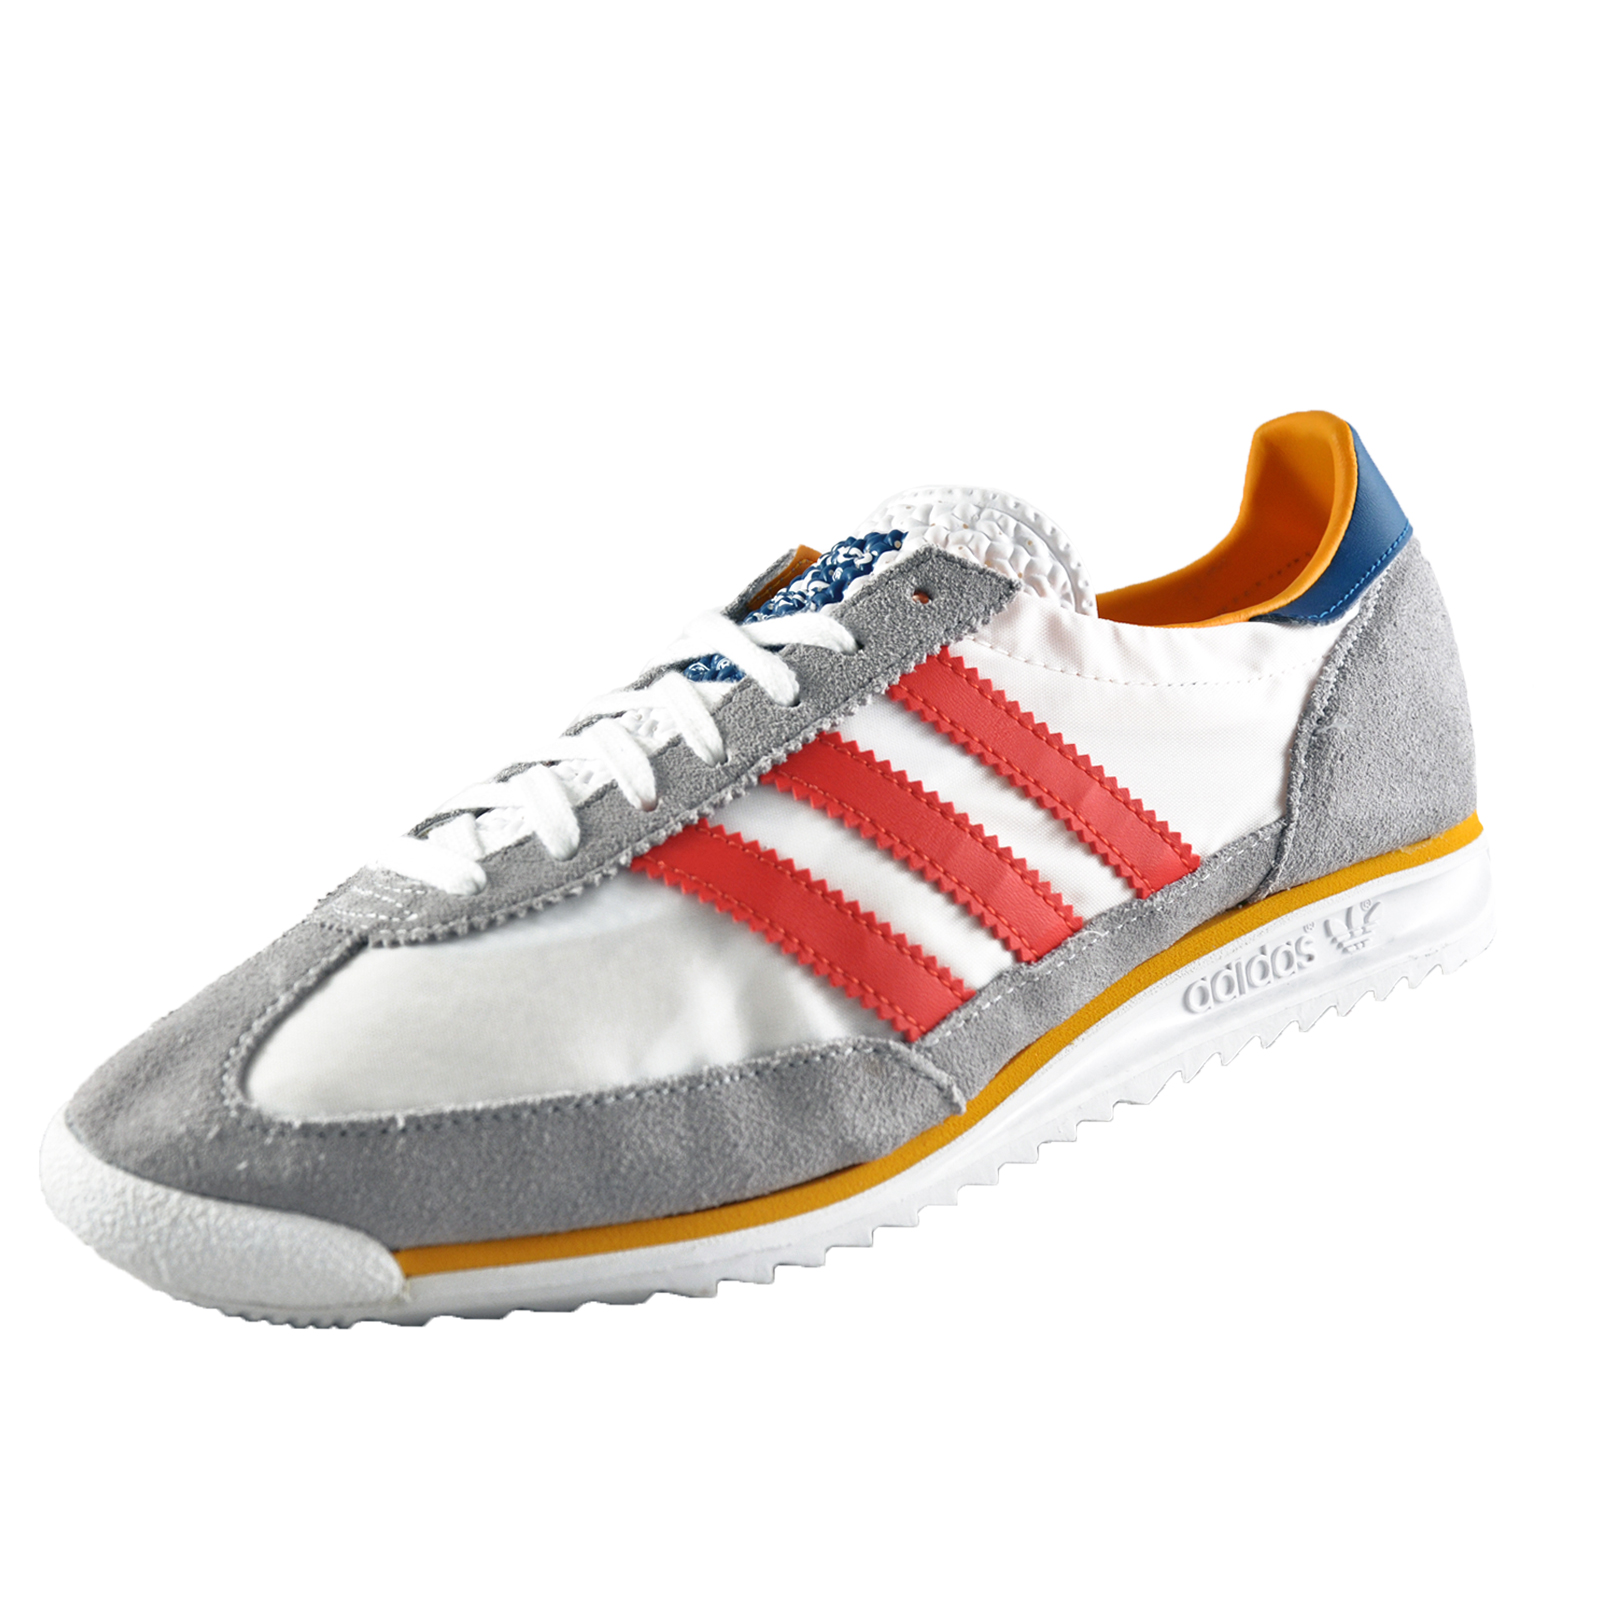 adidas classic trainers